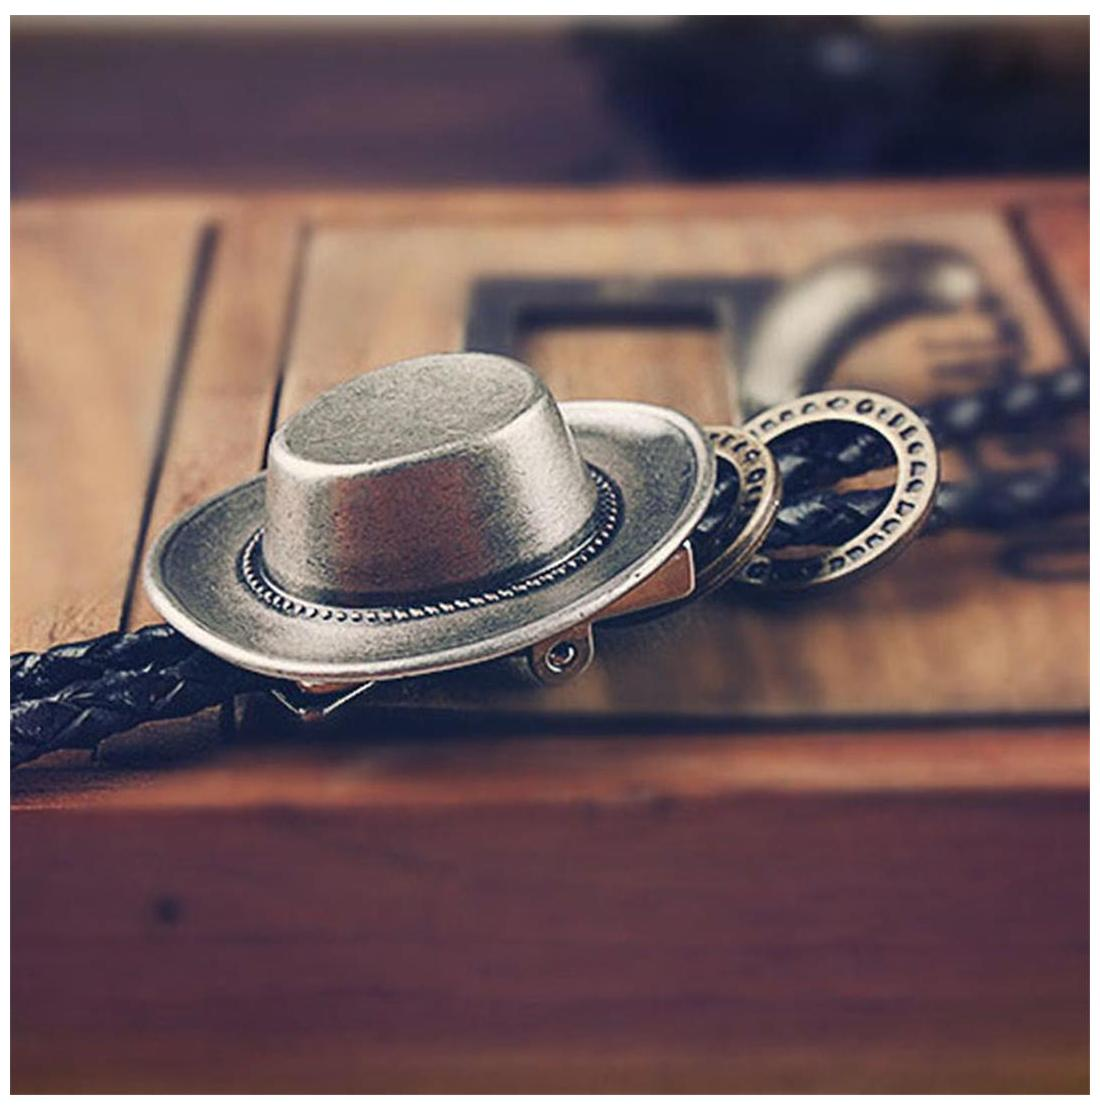 Buy Phenovo Hot Indian Cap Bolo Tie Dance Rodeo Western Cowboy Bola Tie Necktie Necklace Online at Low Prices in India - Paytmmall.com